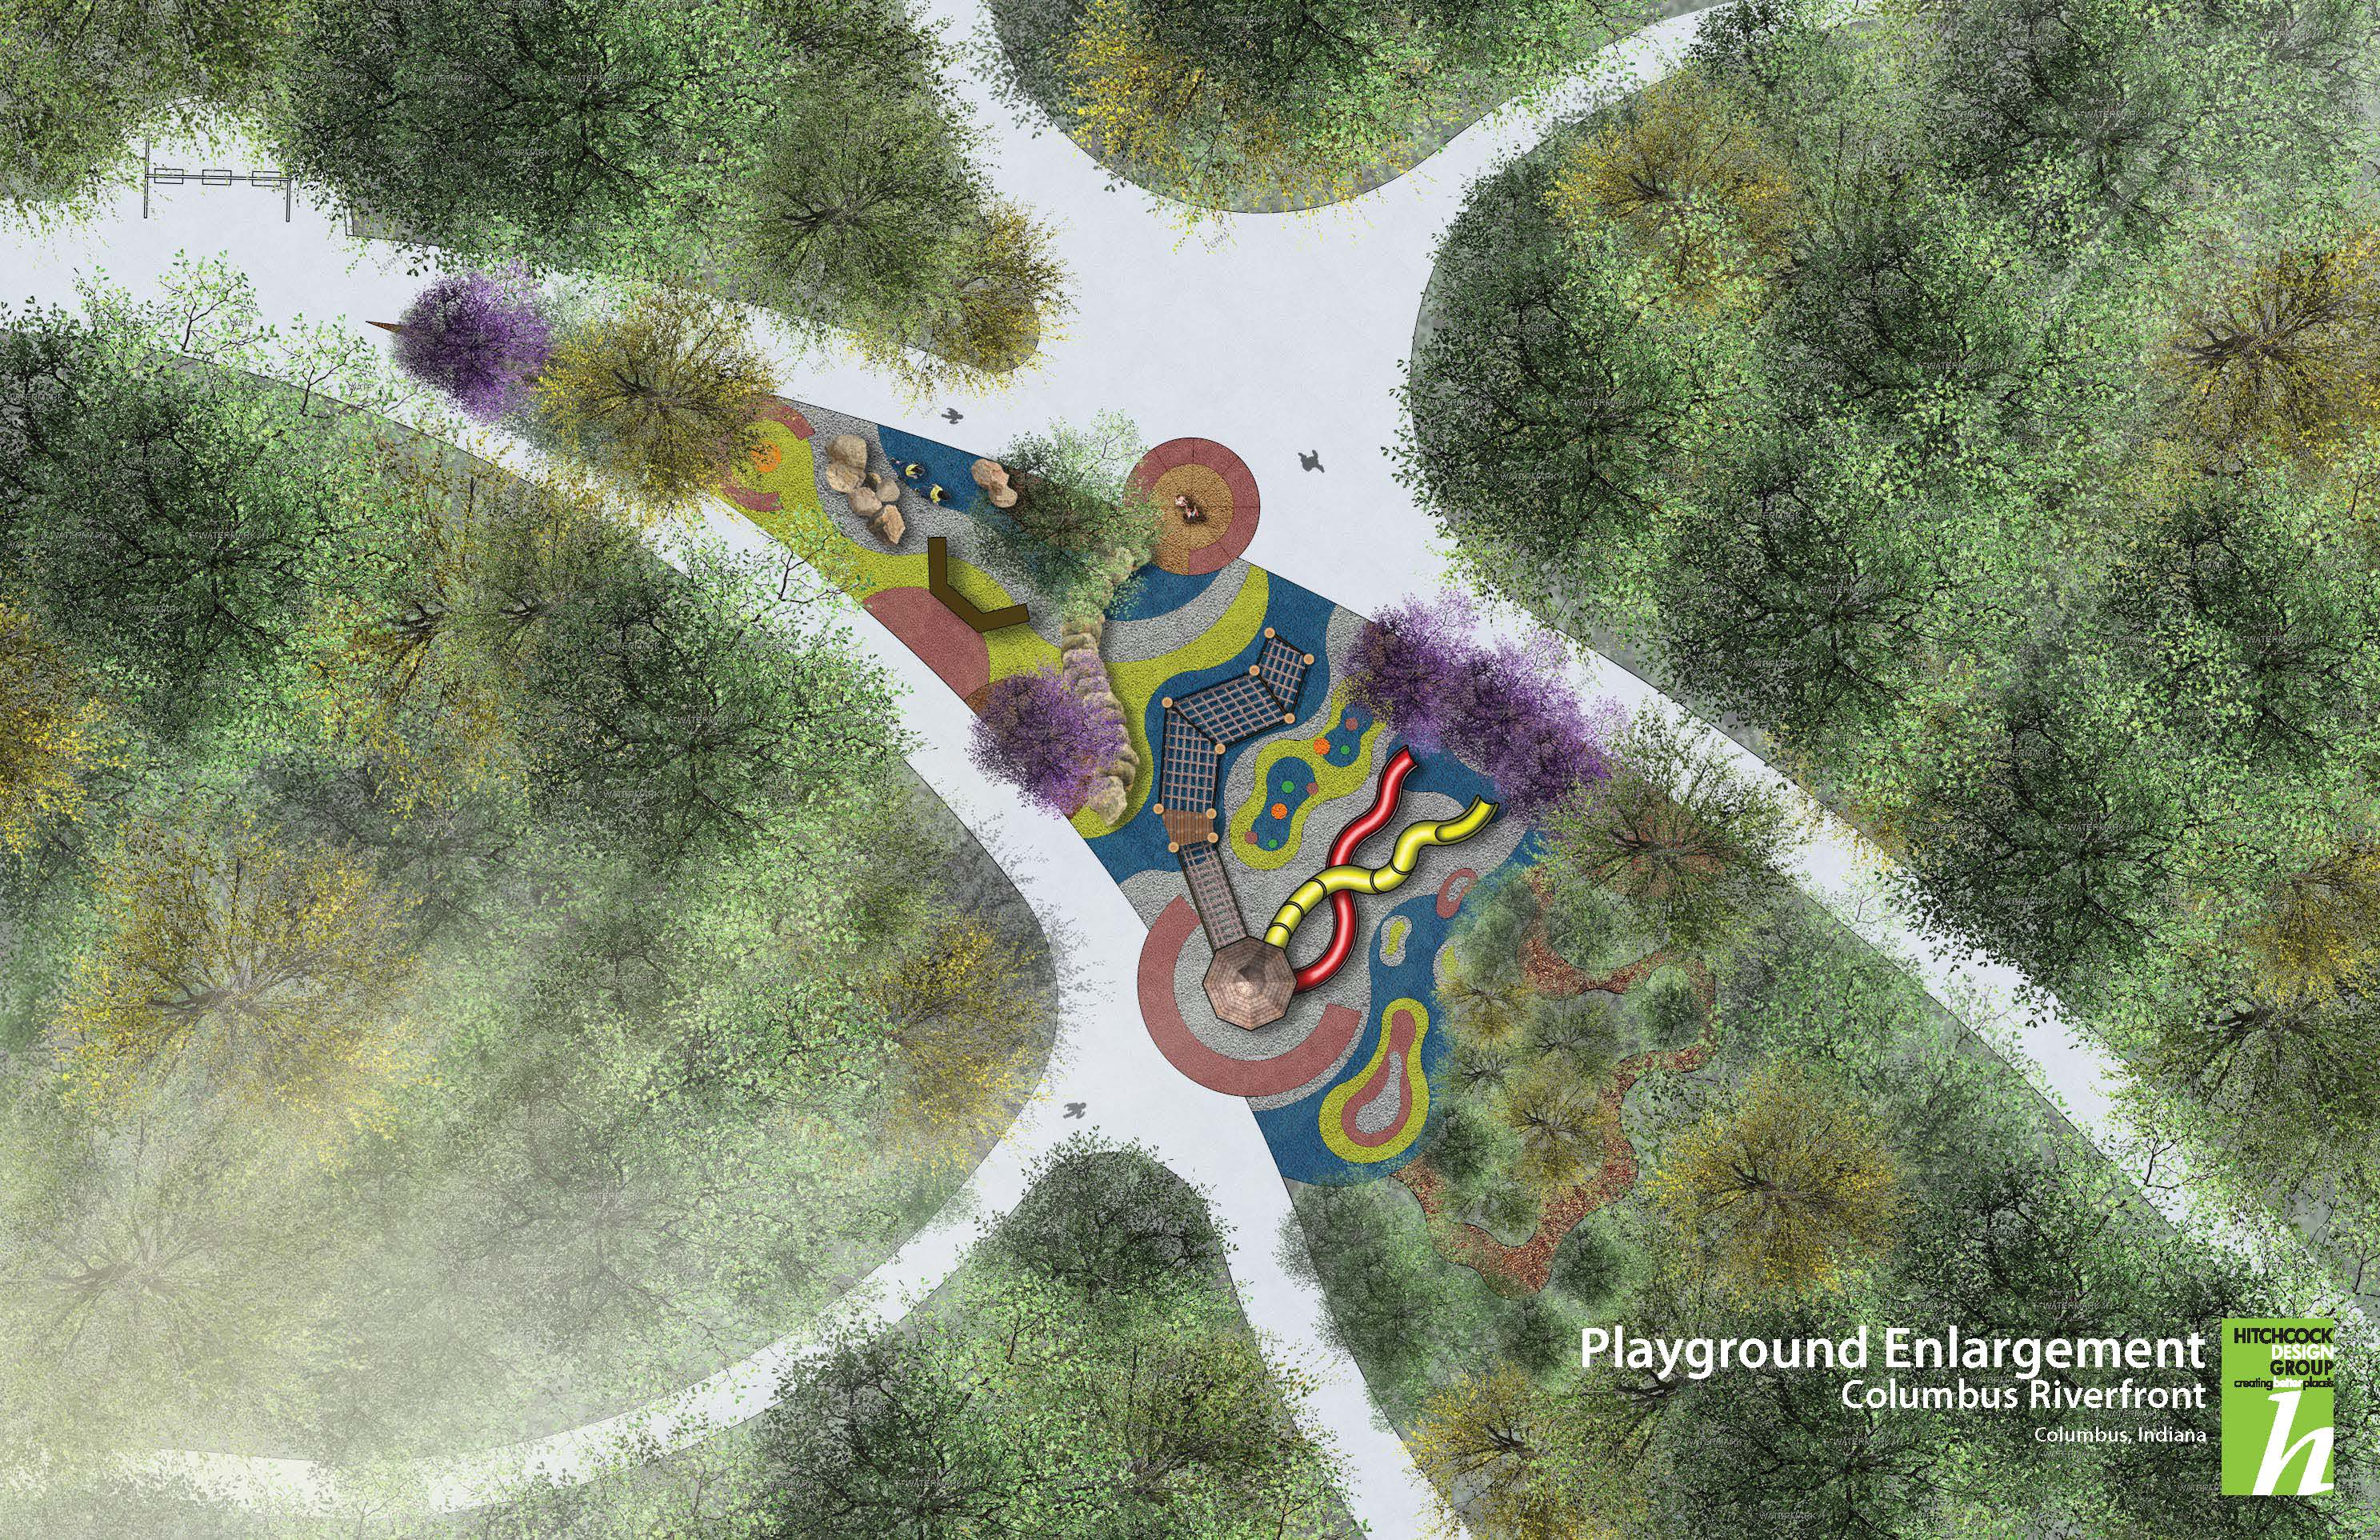 Playground Enlargement